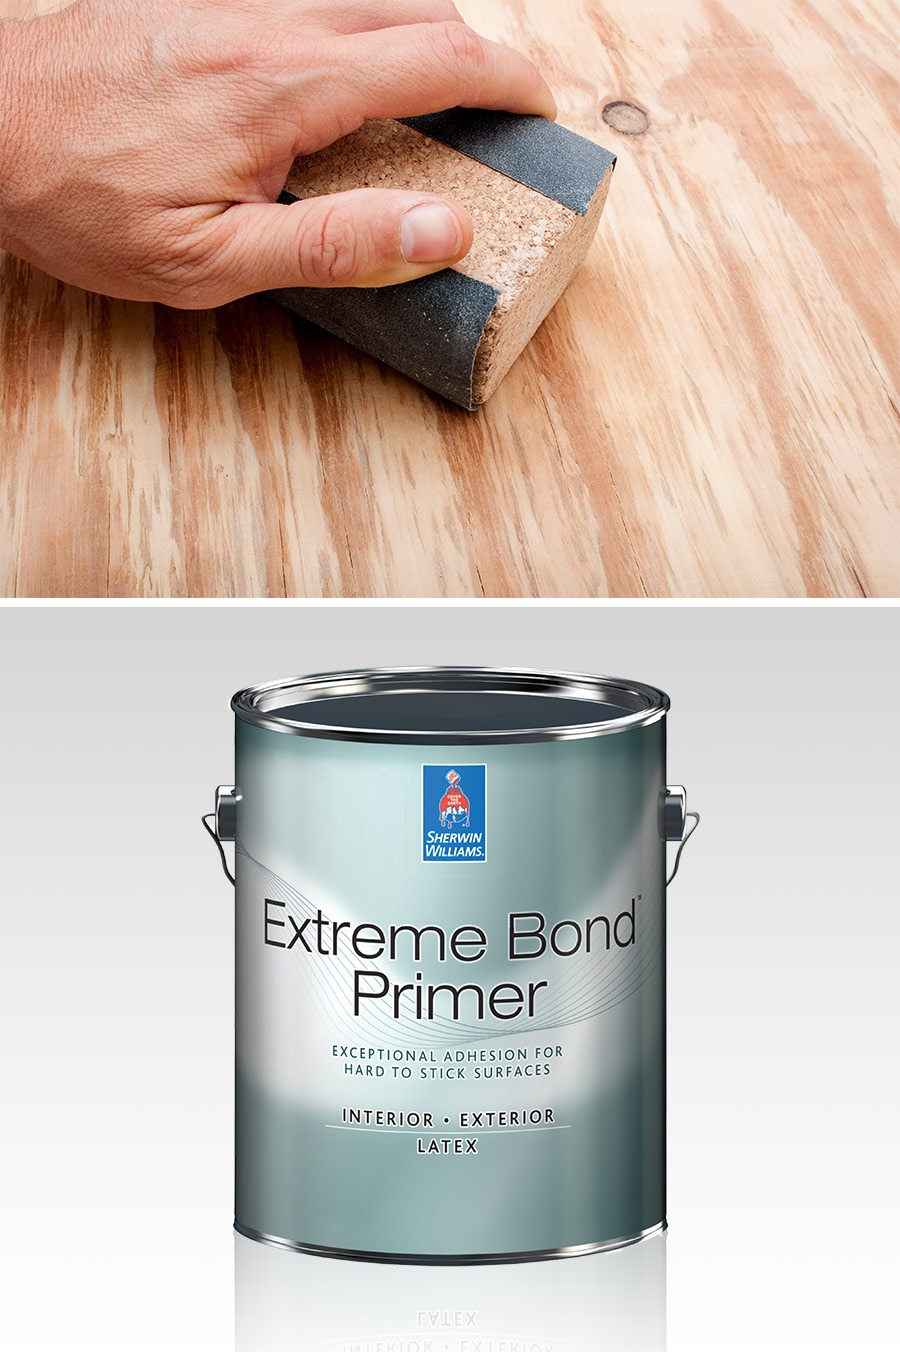 sherwin williams cabinet paint How To Paint Your Kitchen Cabinets in 5 Easy Steps sherwin williams cabinet paint